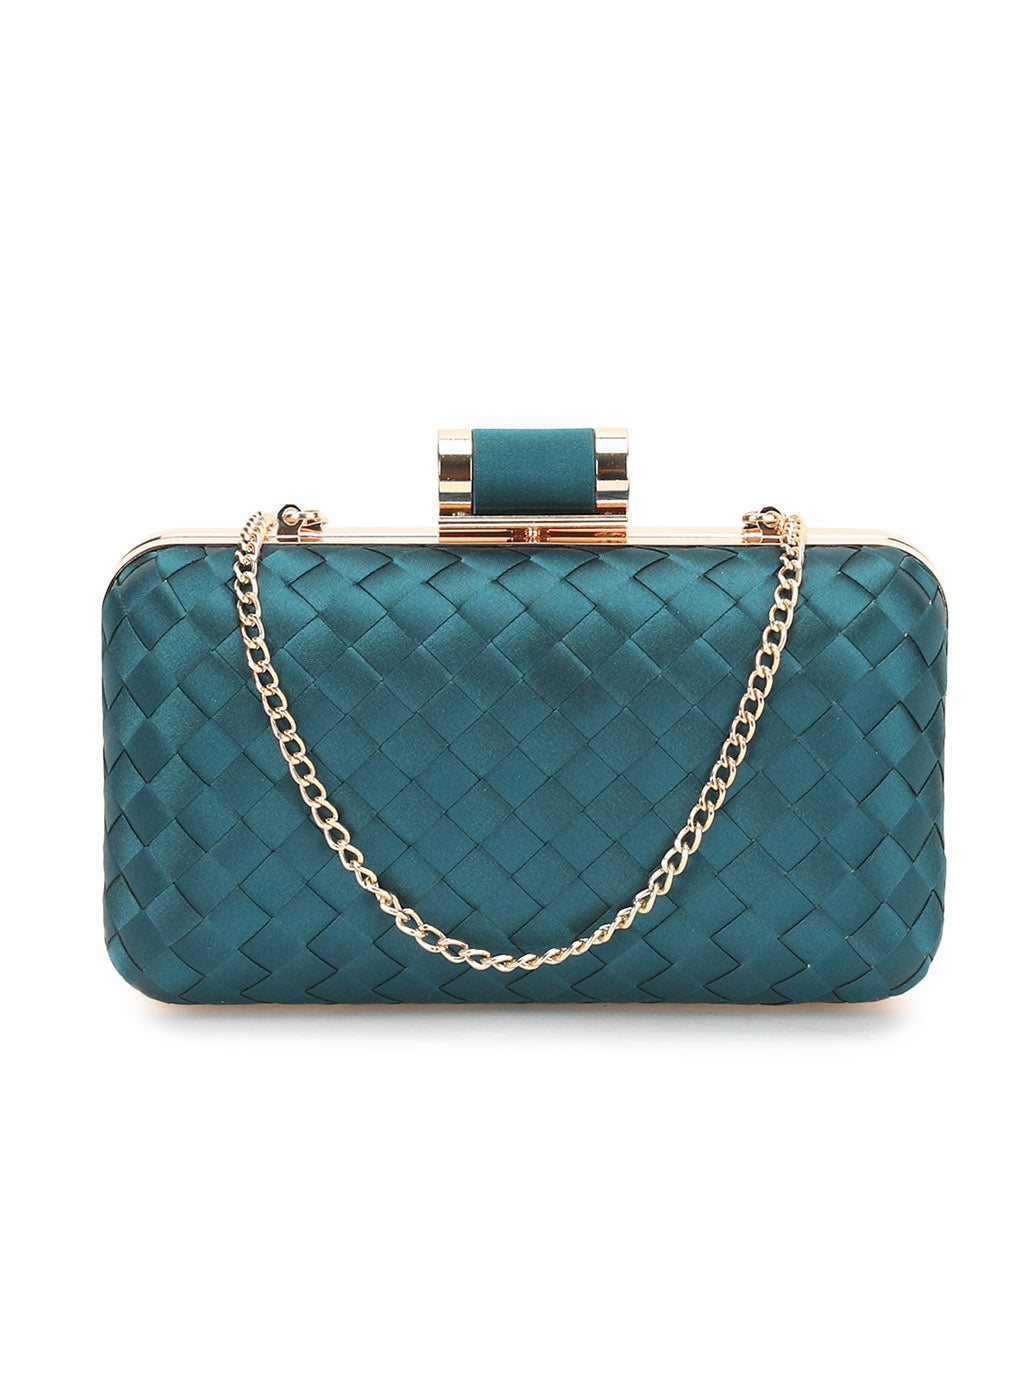 Lana Turquoise Weave Clutch (Buy 2 Get Extra 30% Off)